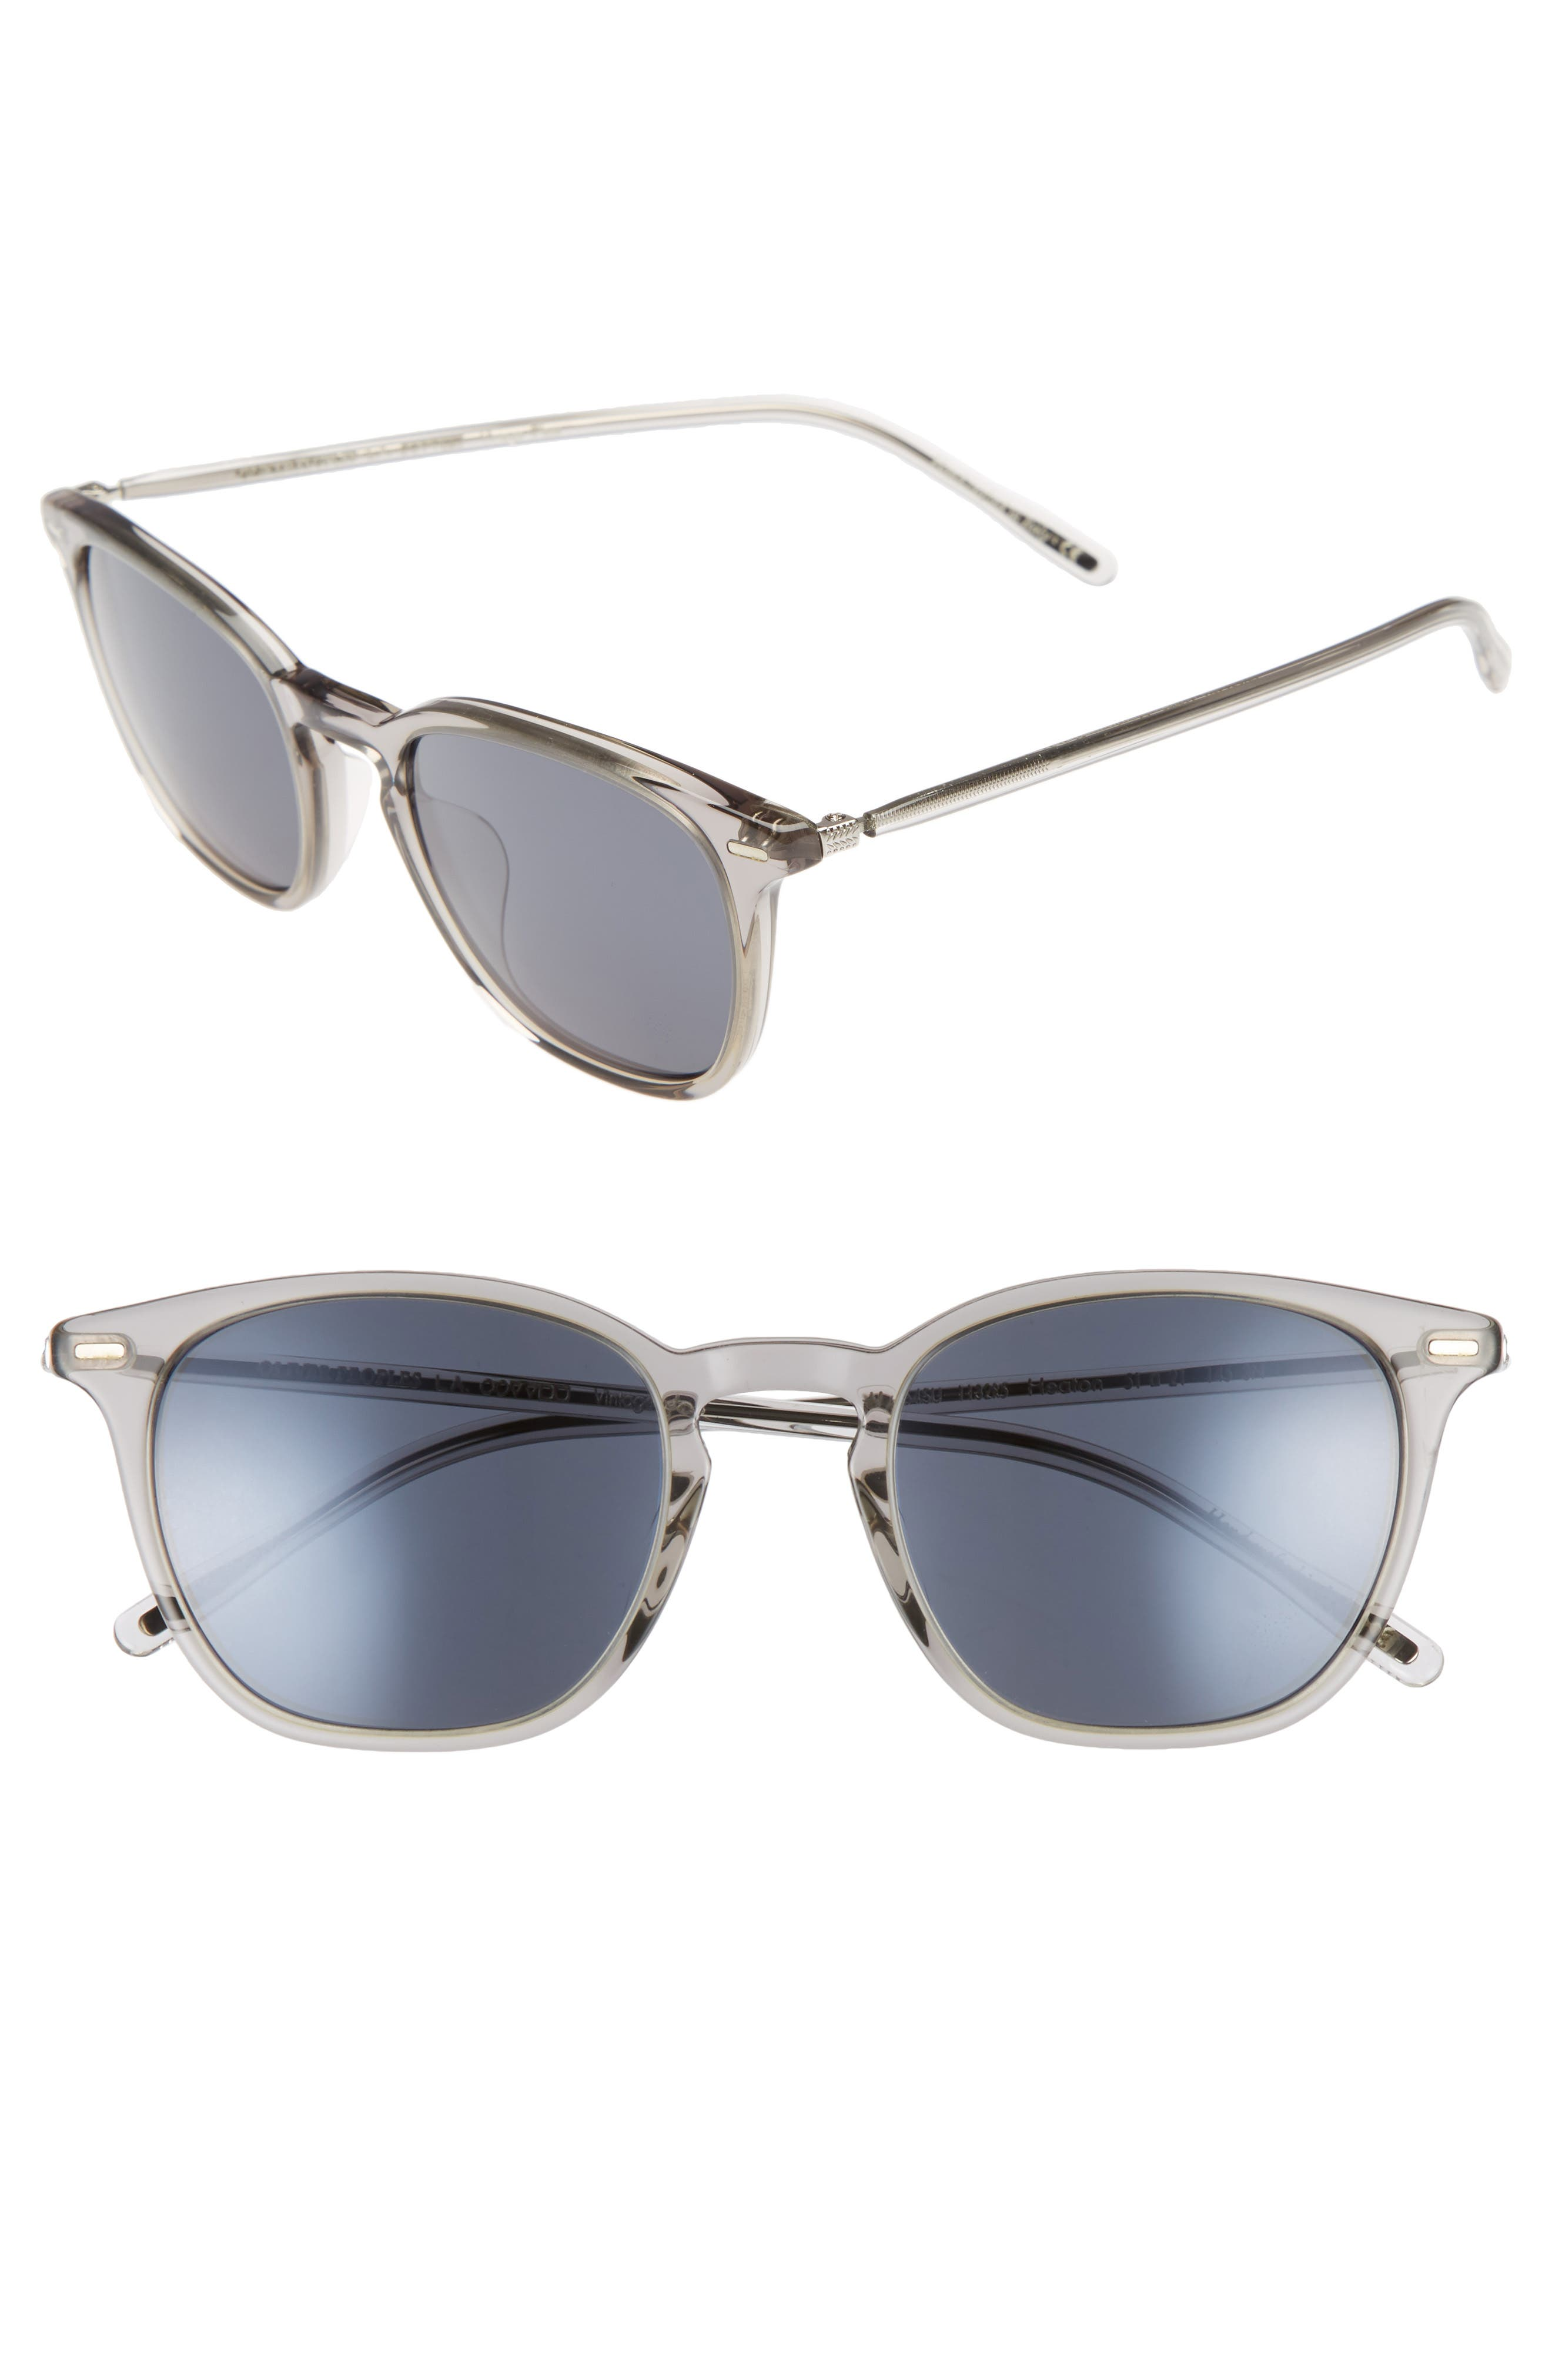 OLIVER PEOPLES Heaton 51mm Sunglasses, Main, color, 022